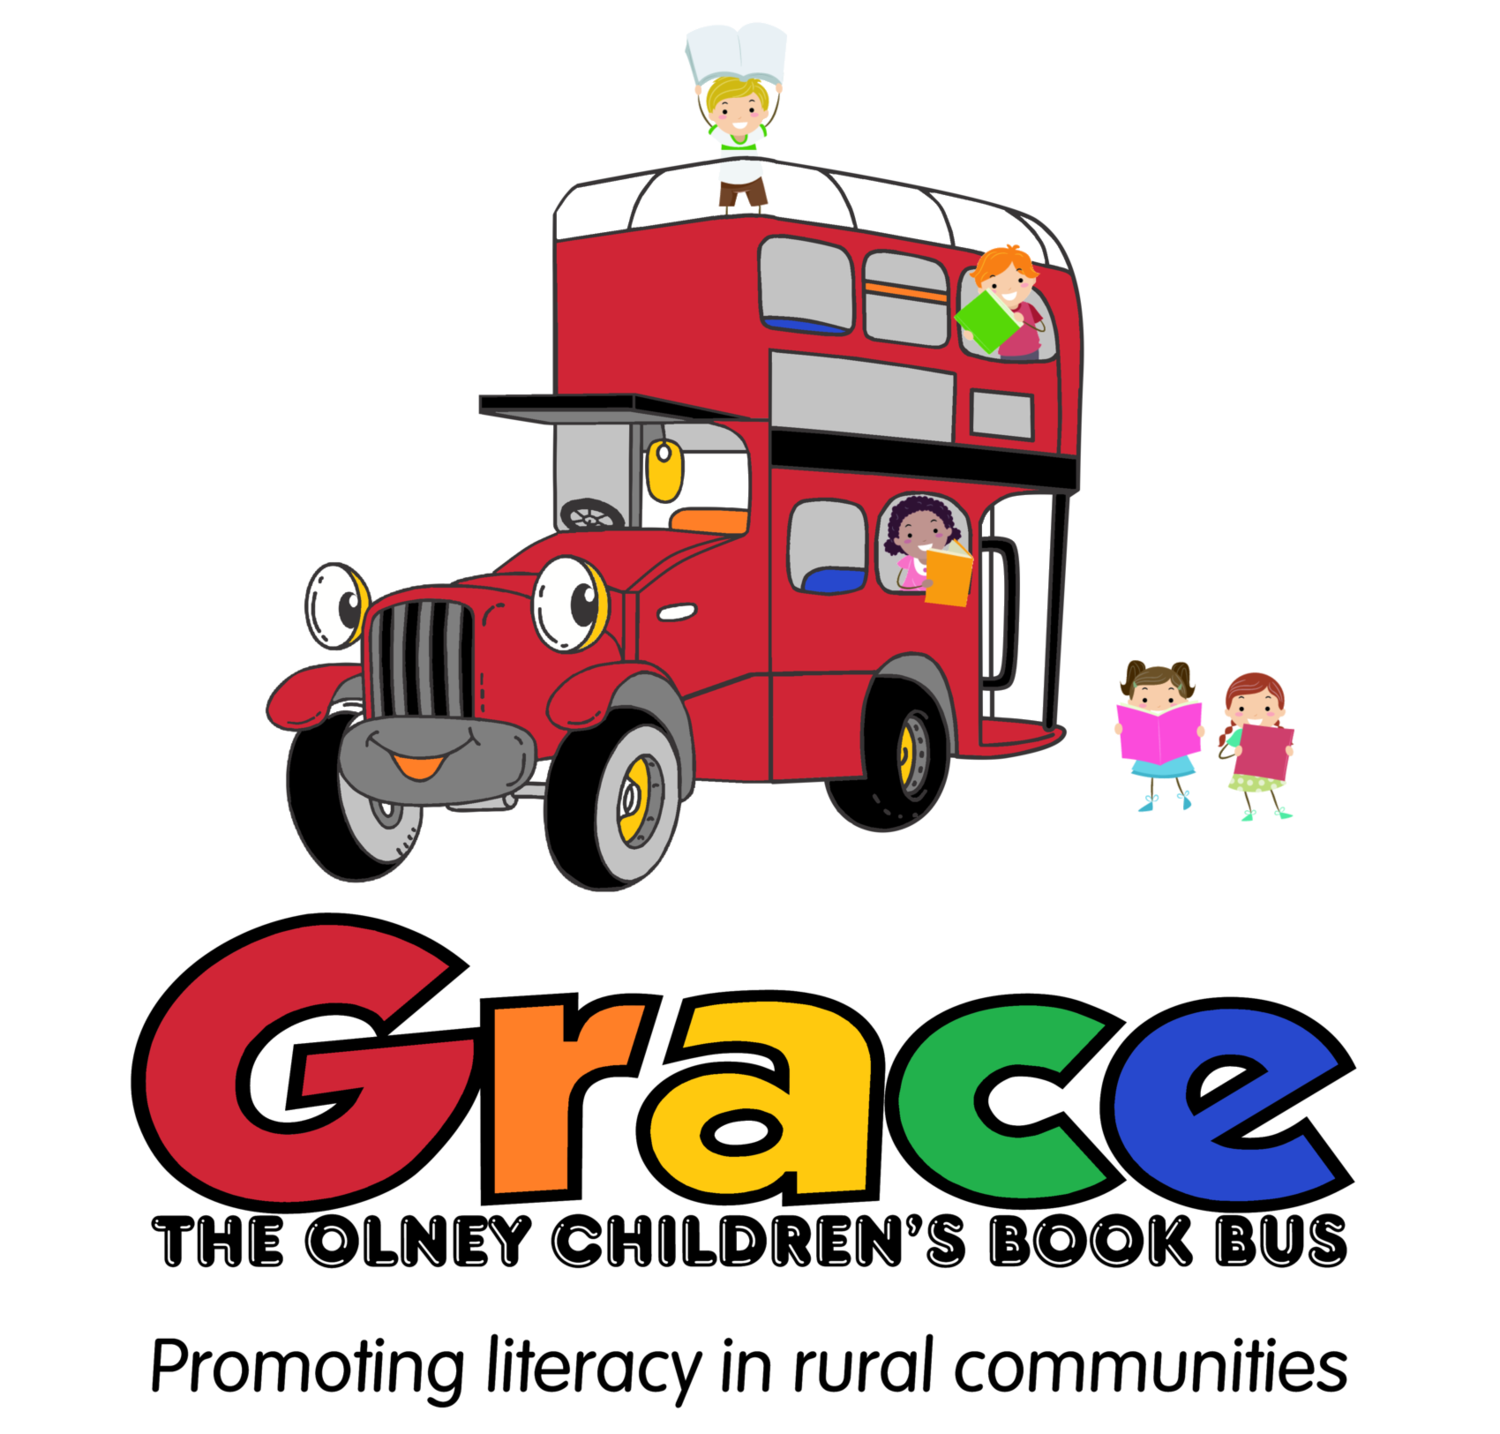 Grace the Olney Bookbus